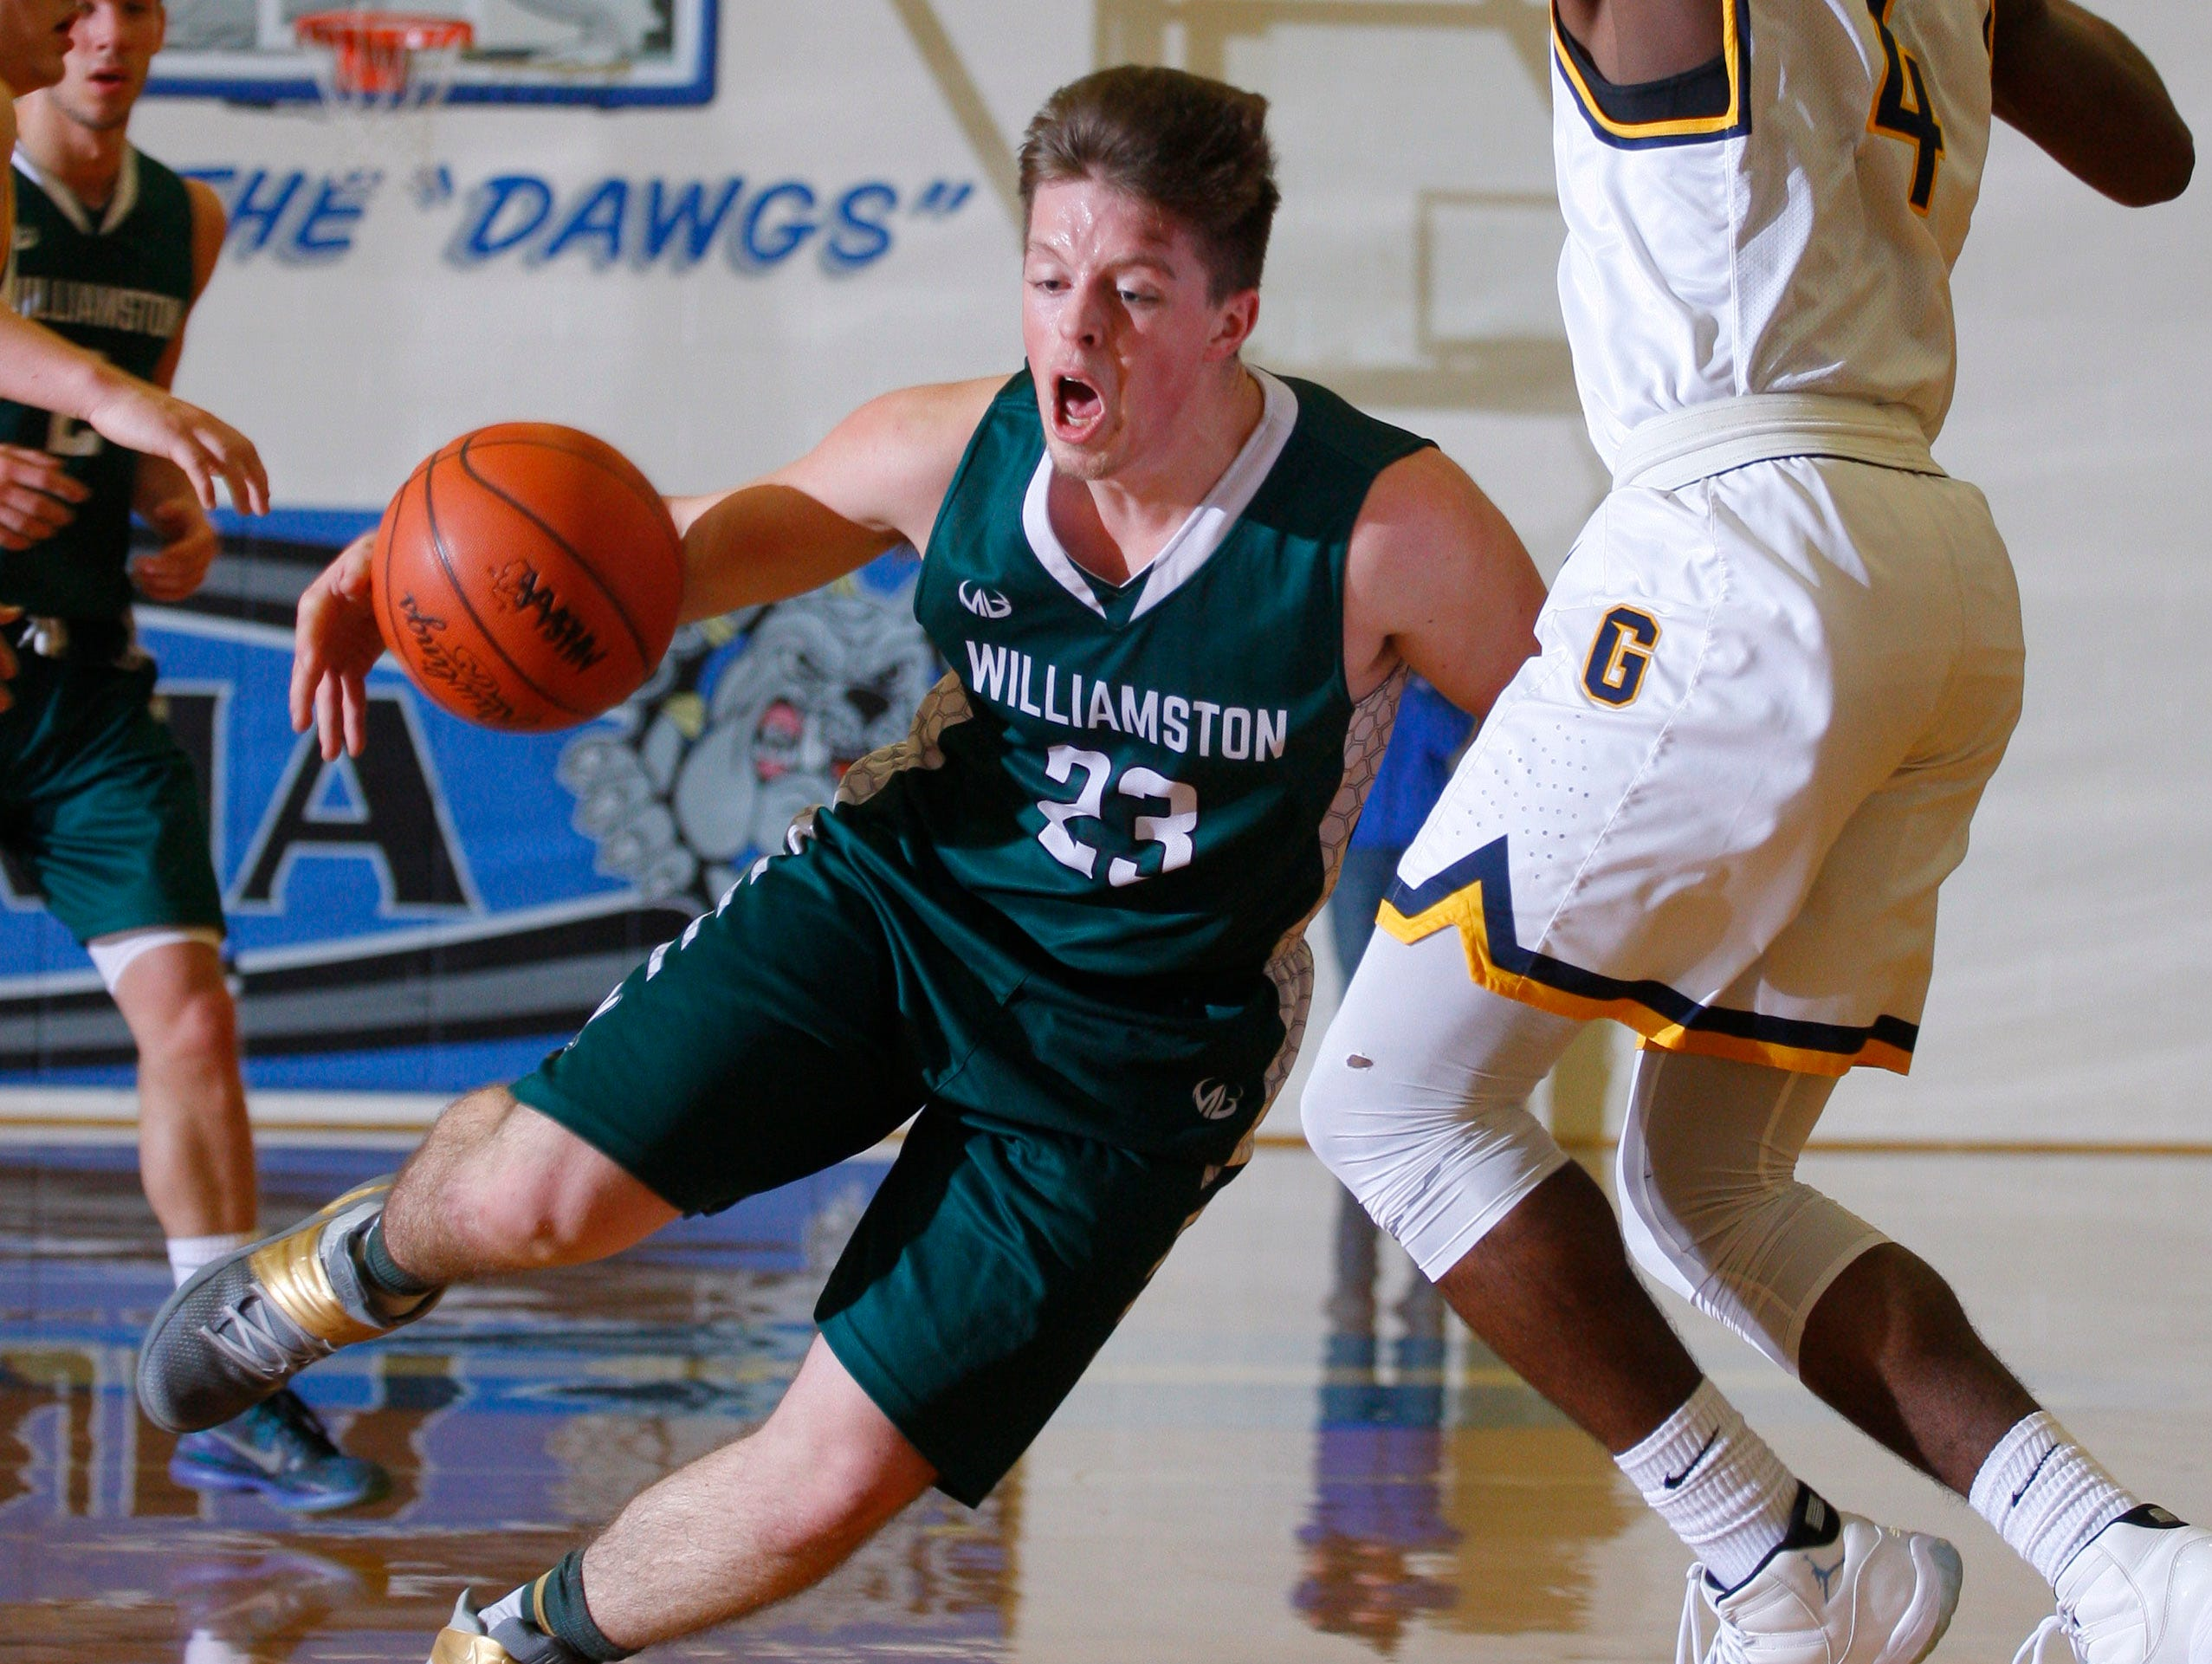 Williamston's Cole Kleiver, left, dribbles past pressure form Godwin Heights' Suriya Davenport during their MHSAA regional game Monday, March 13, 2017, in Ionia, Mich. Williamston won 69-65..